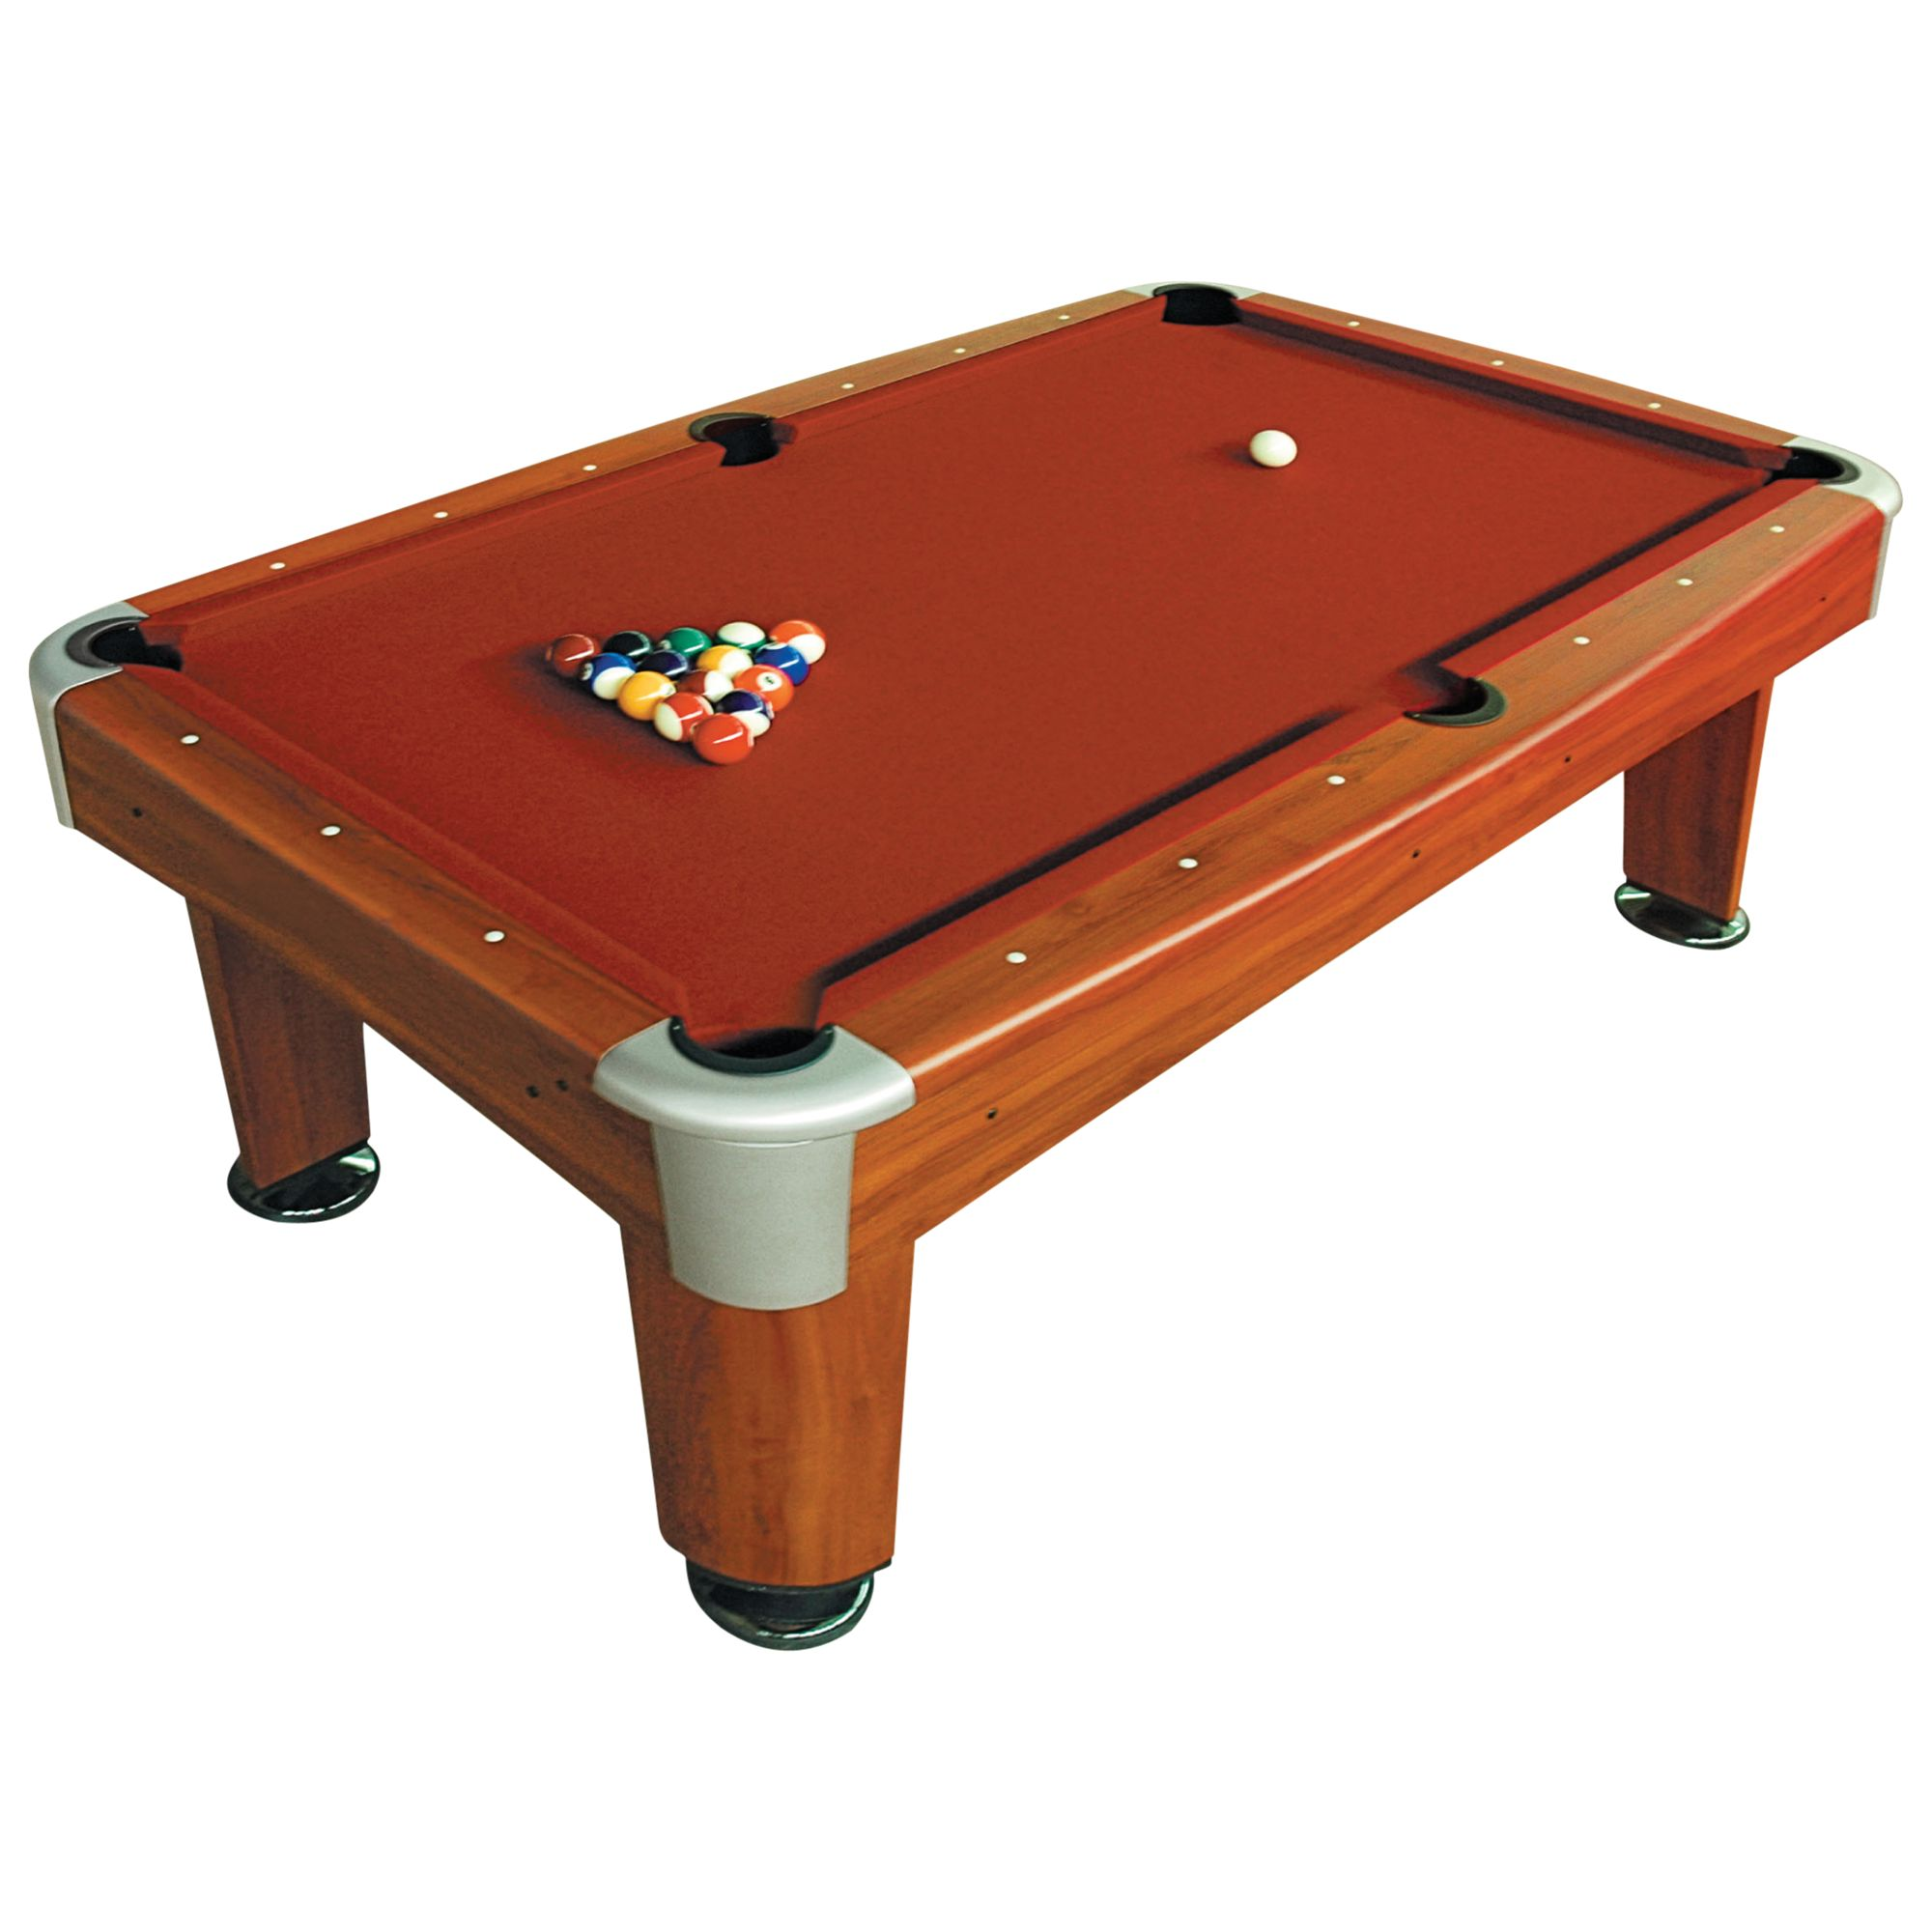 BCE Riley BCE Riley Rosemont 7 Foot Pool Table, Red